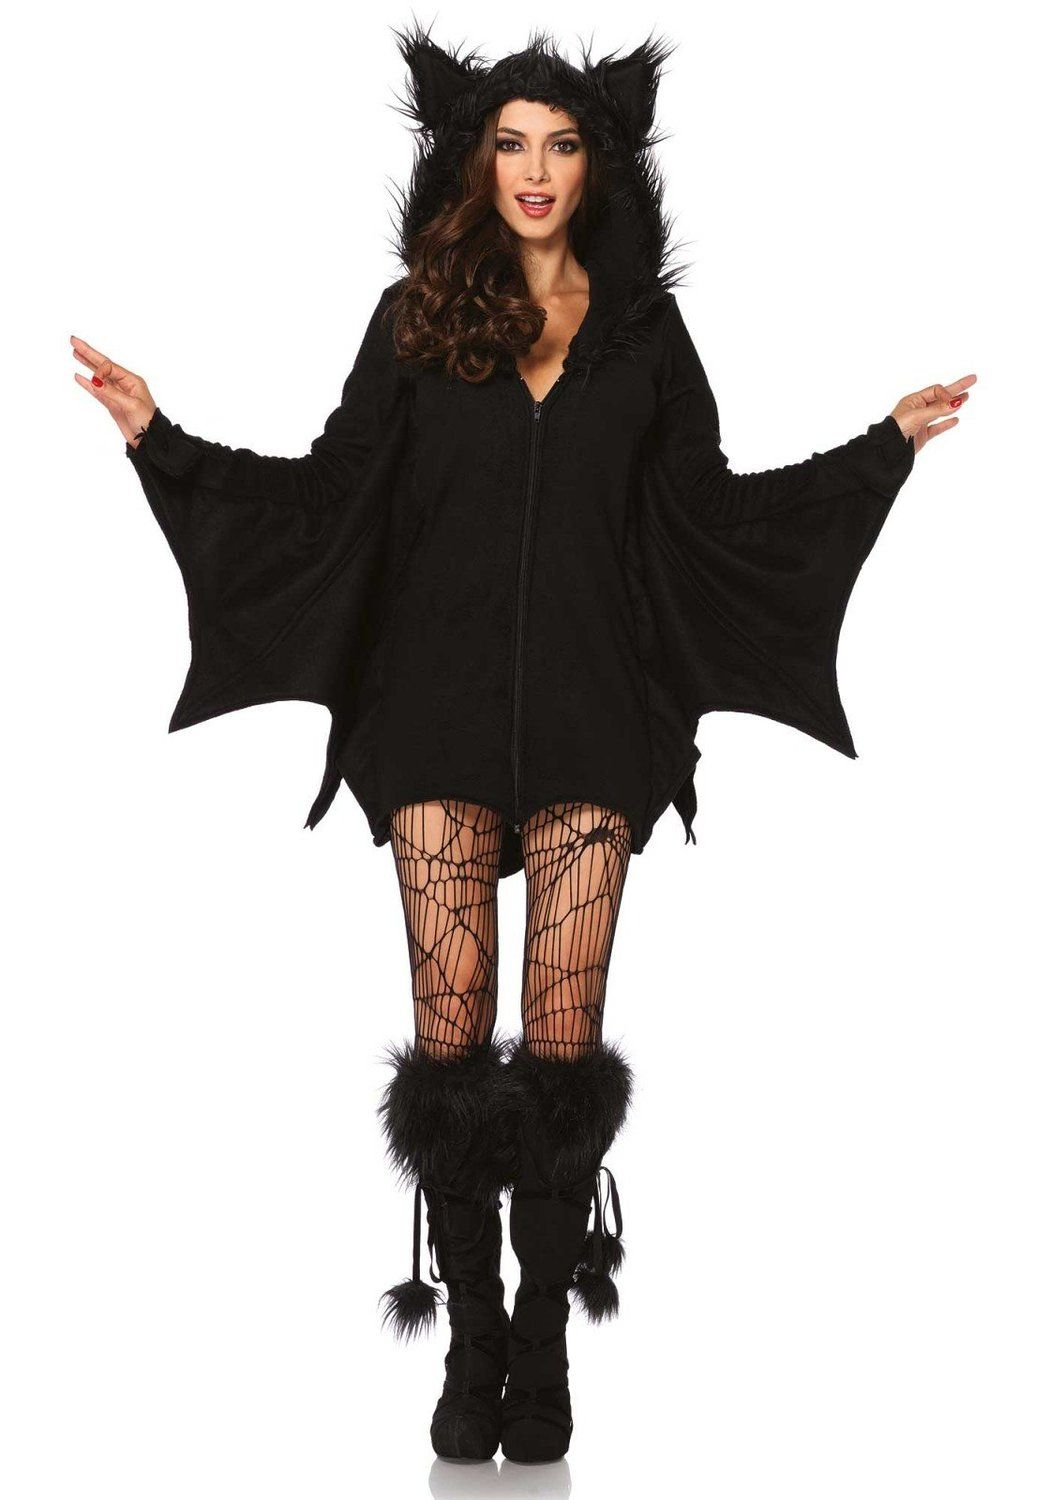 Amazon.com: Leg Avenue Women's Cozy Bat Costume: Clothing